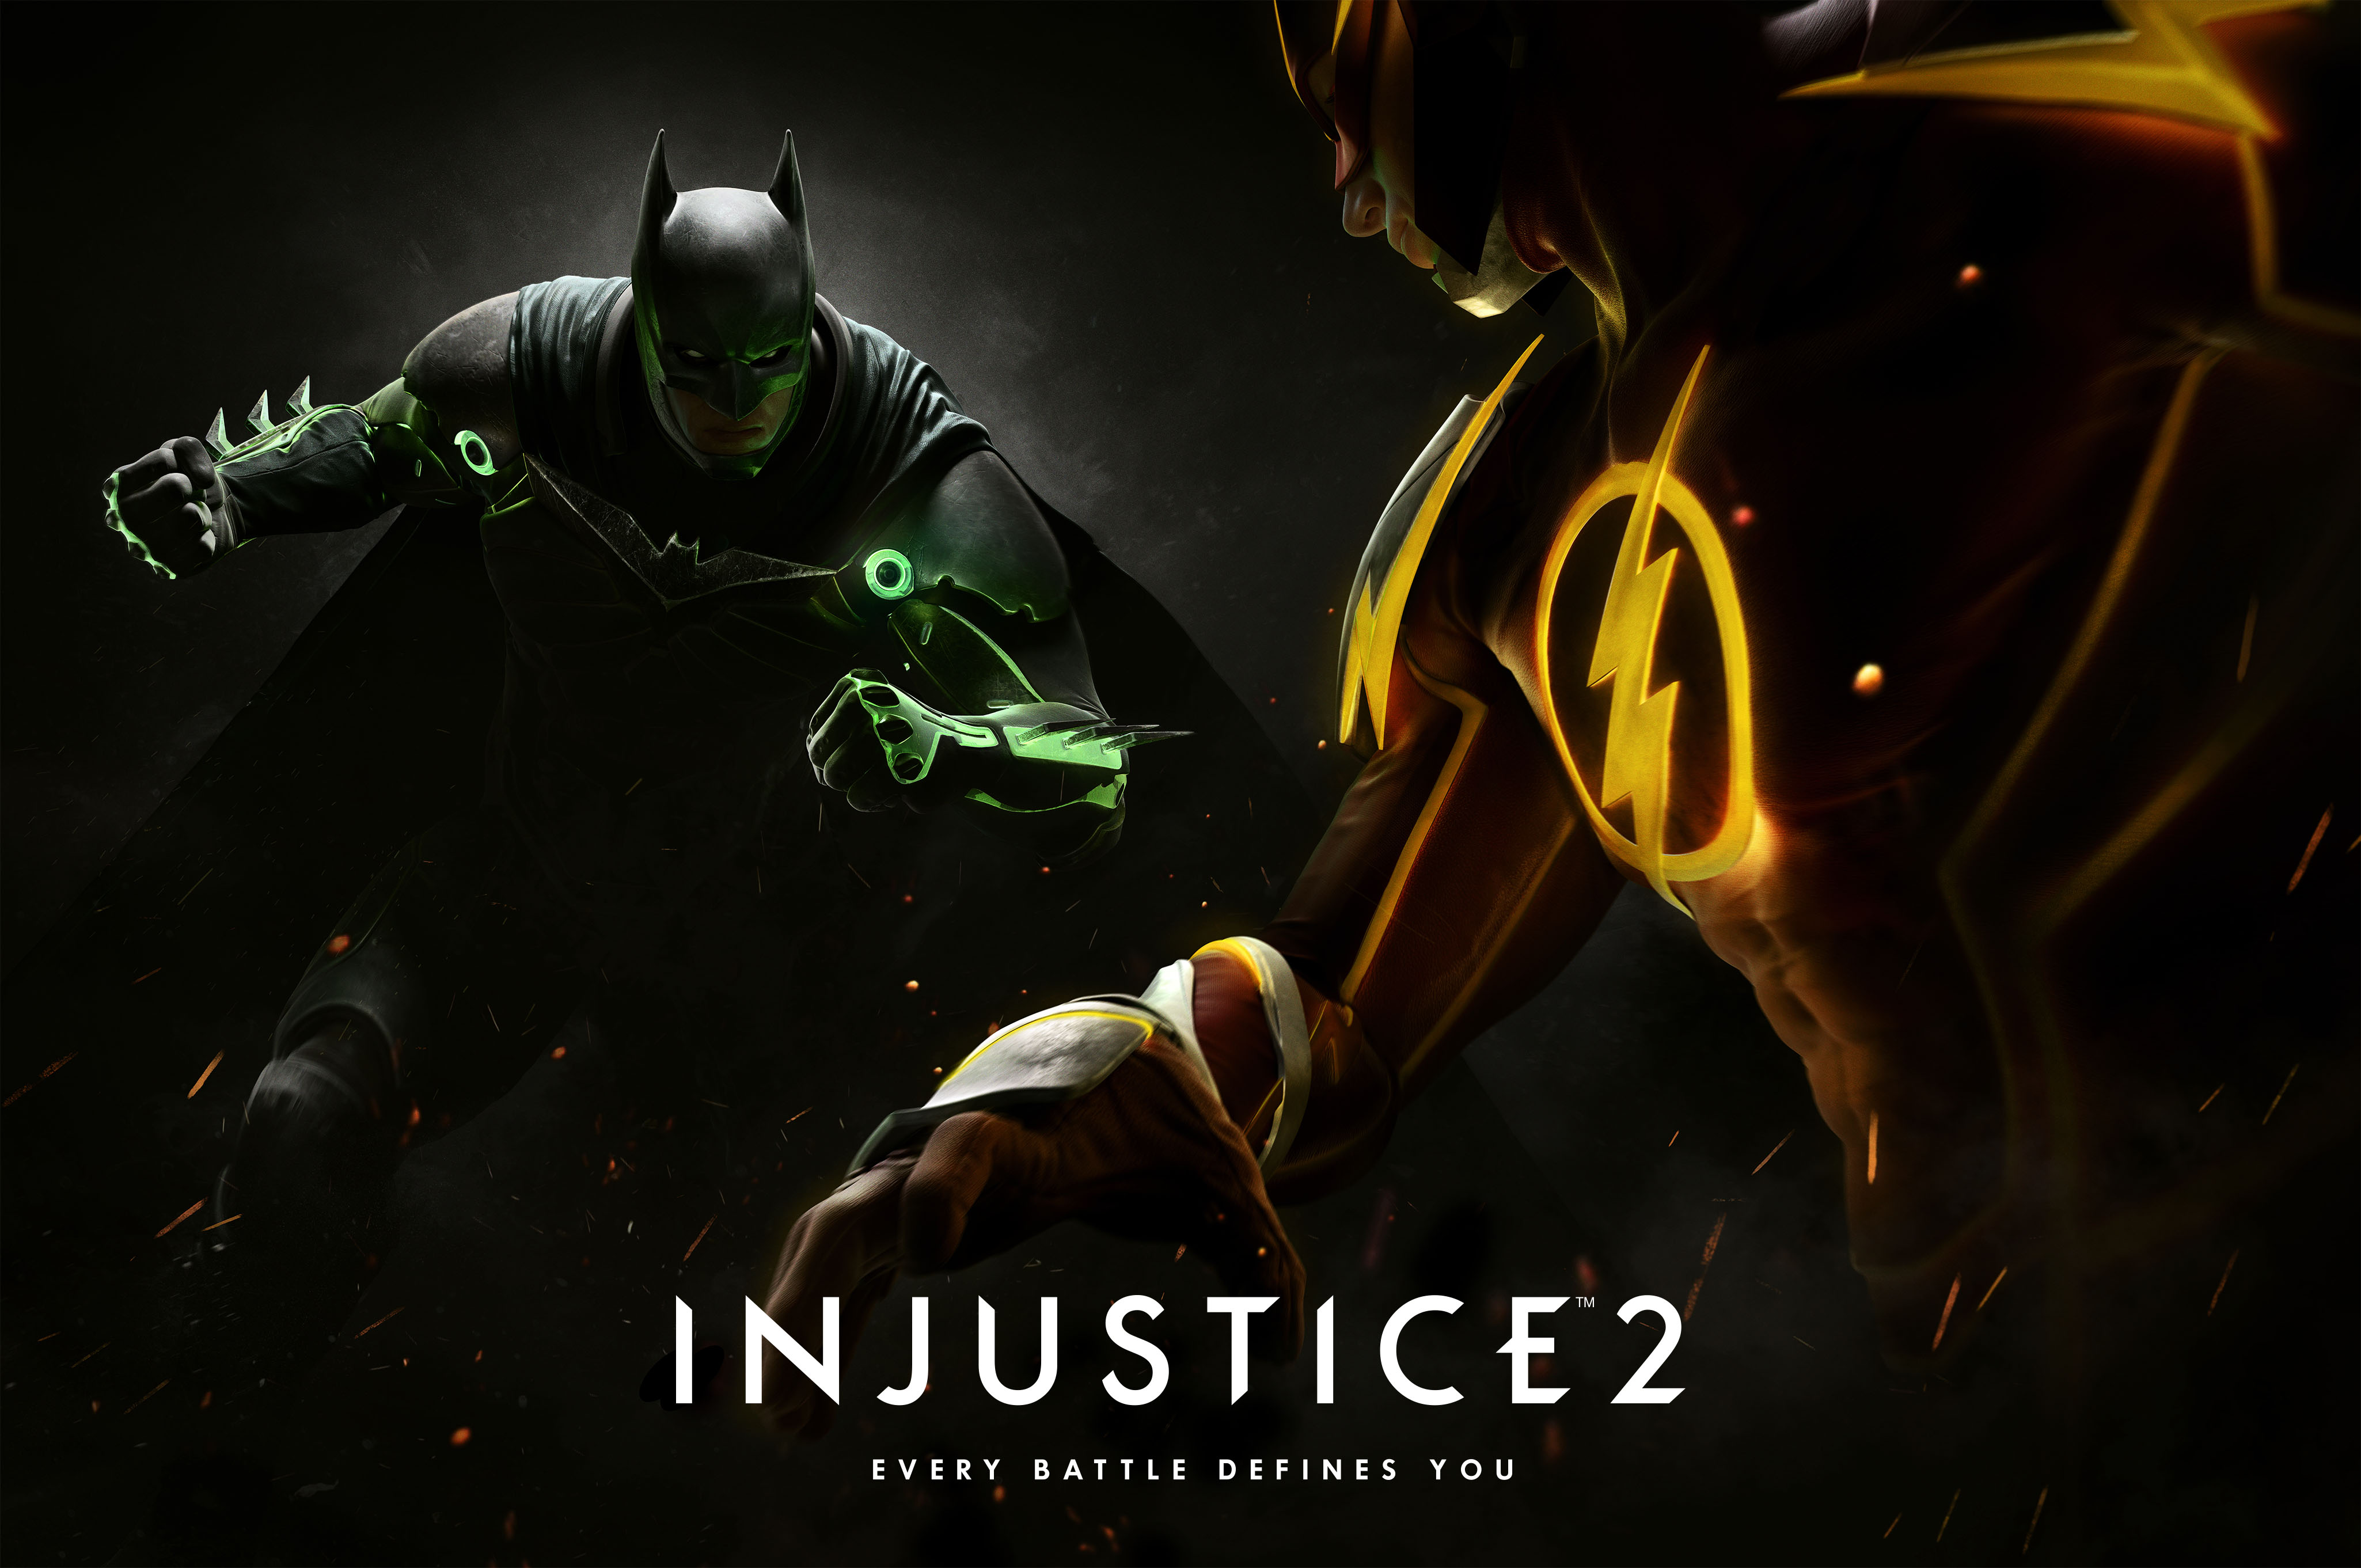 Injustice 2 trailer (2017)